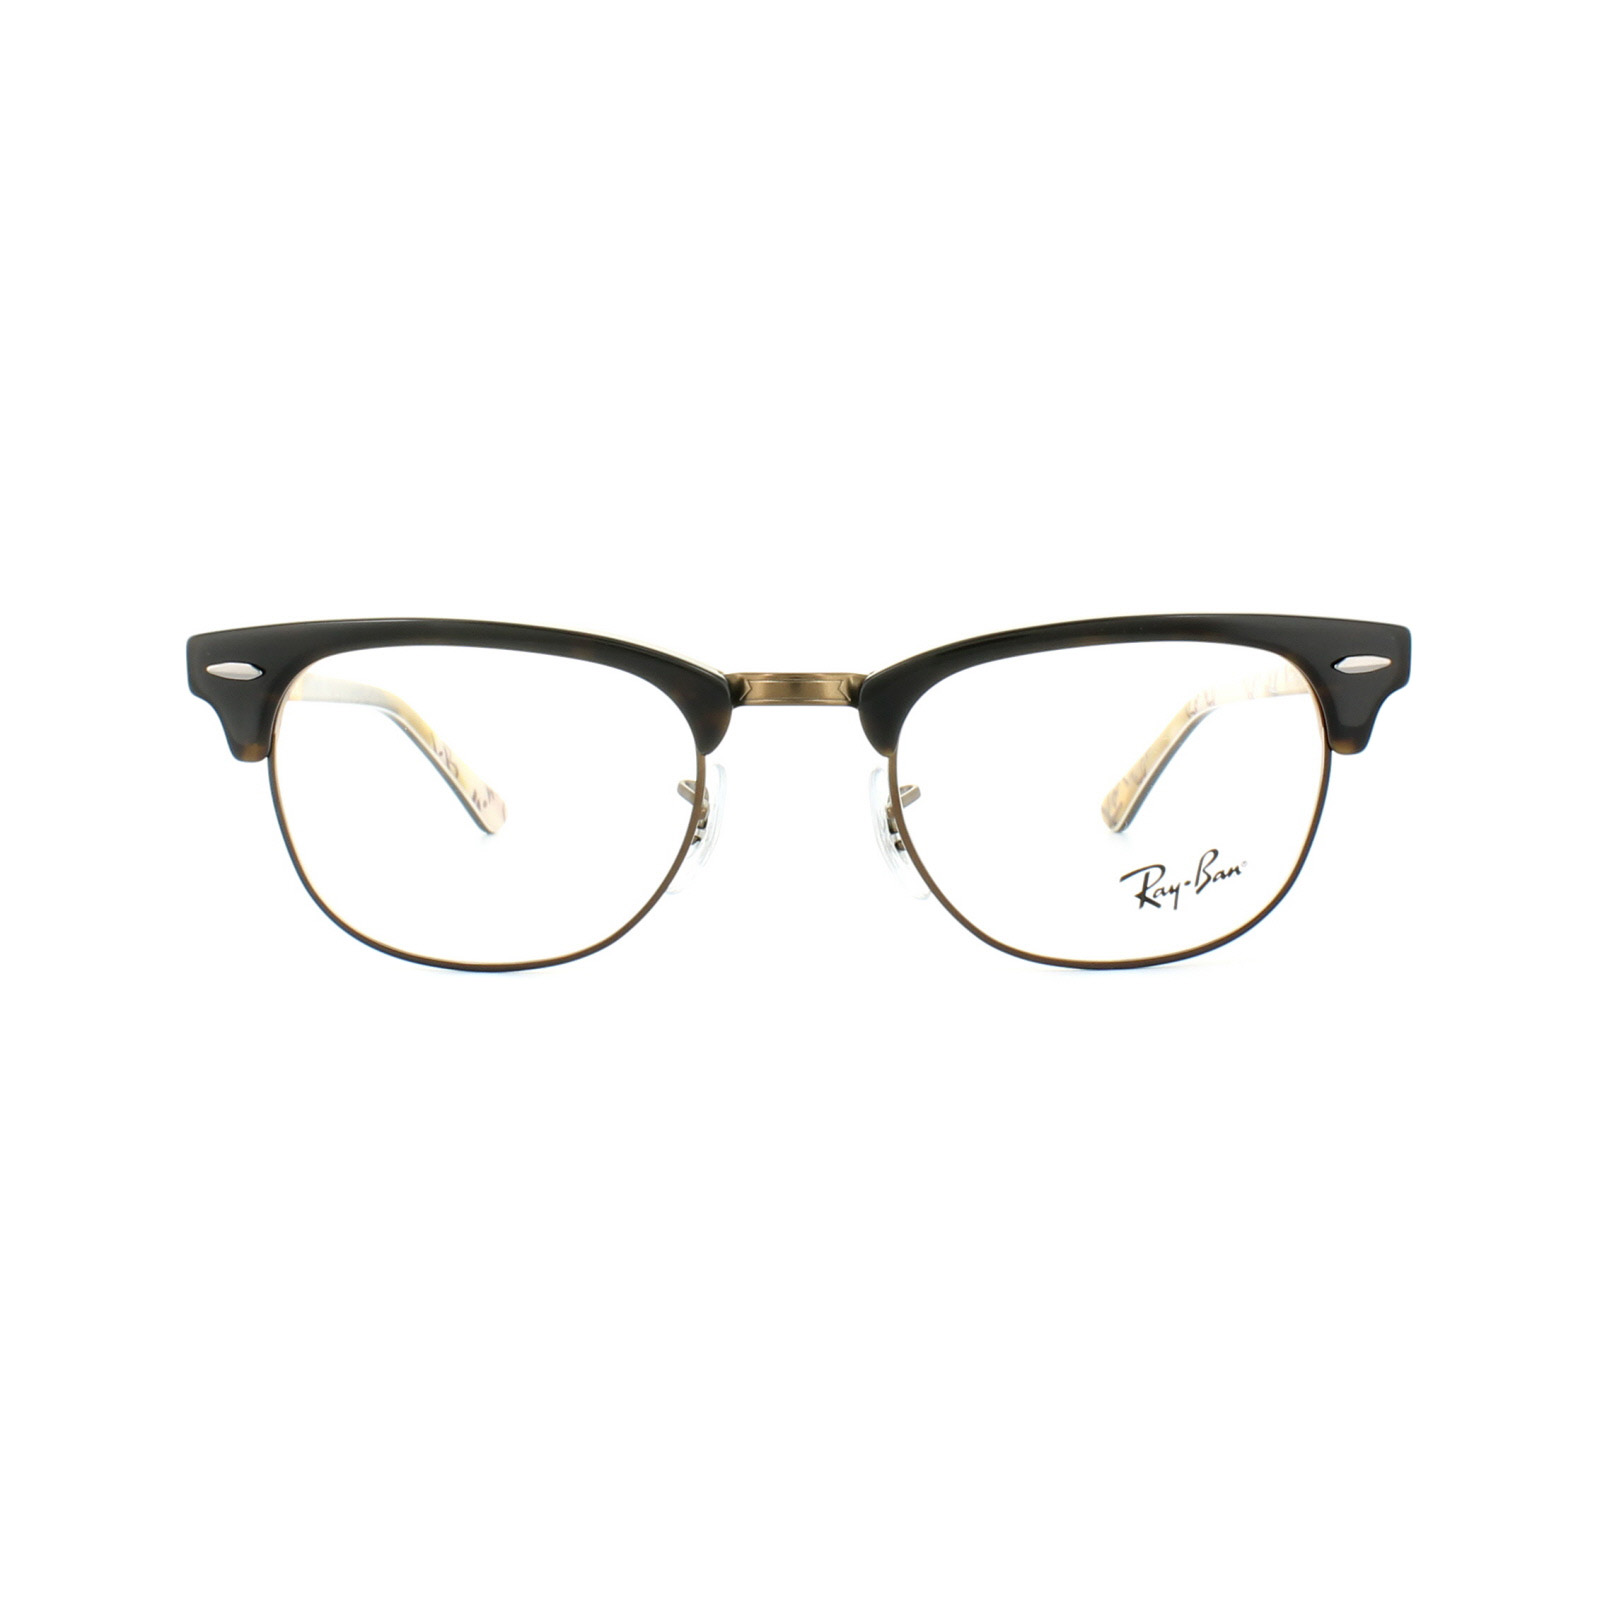 Details about Ray Ban Glasses Frames 5154 Clubmaster 5650 Havana Texture Camouflage 51mm